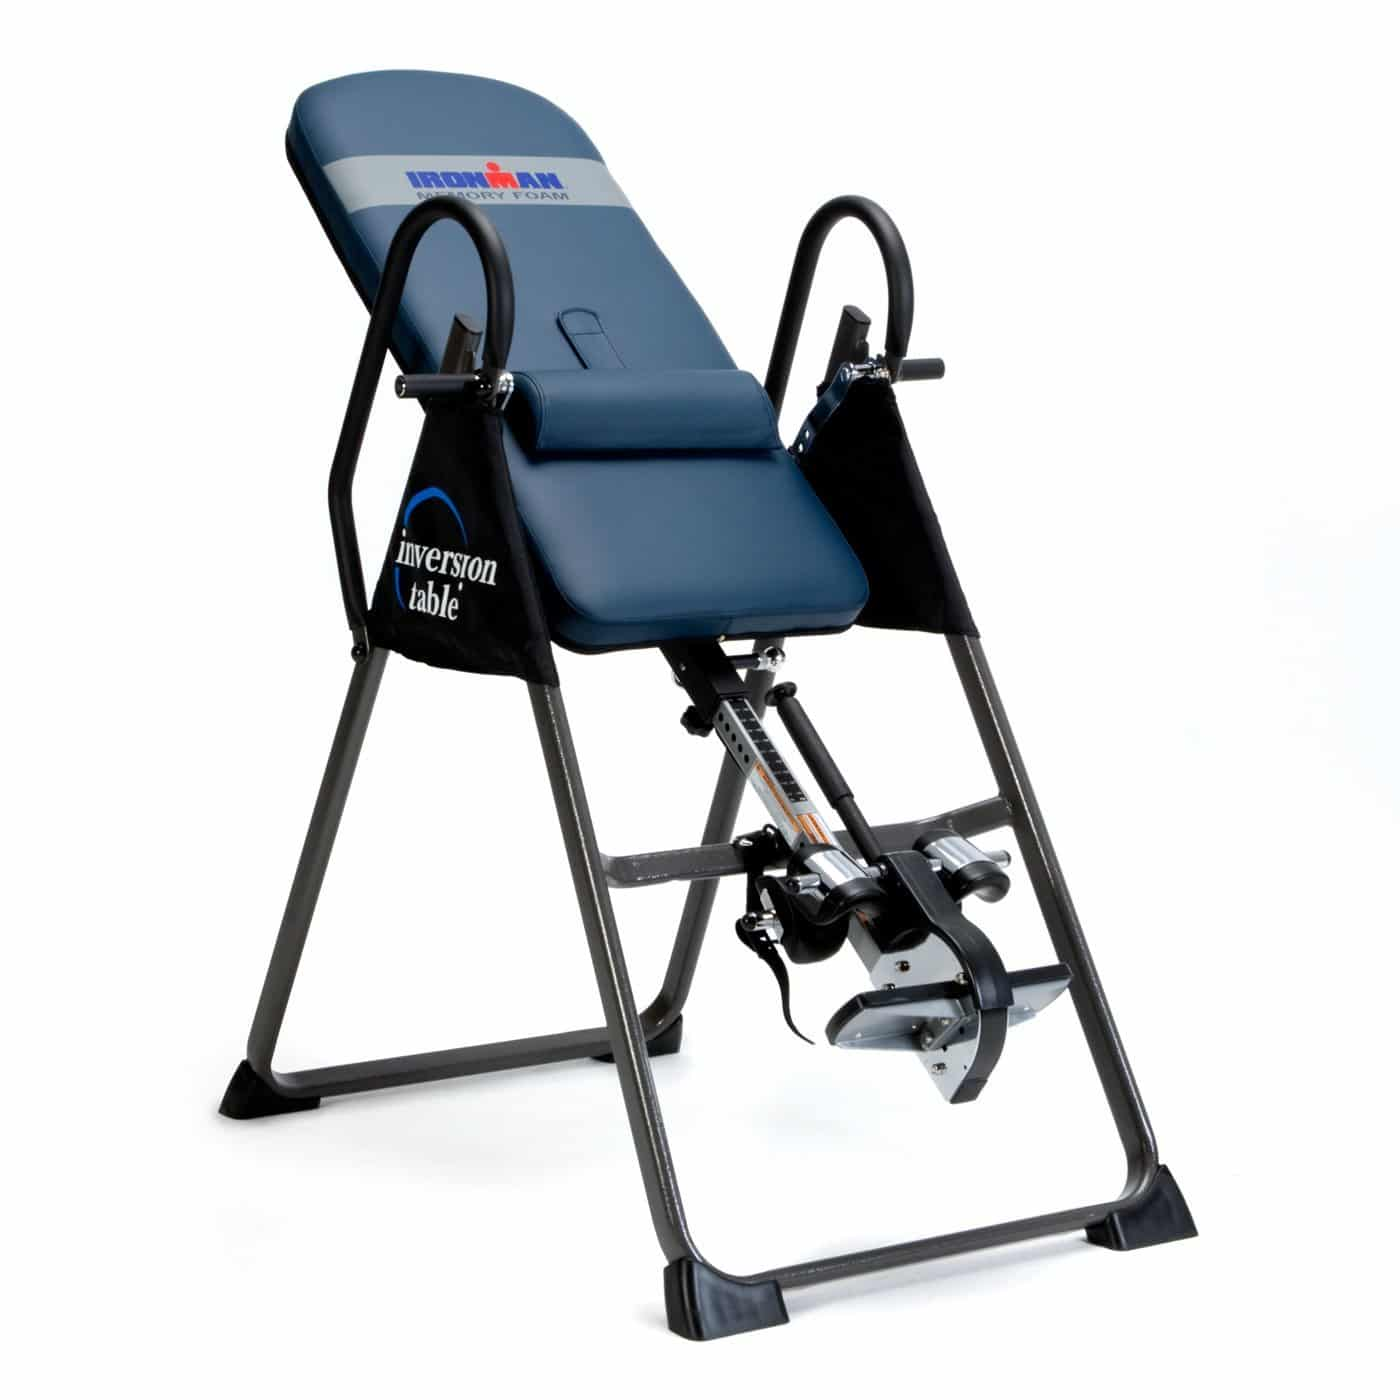 Ironman Gravity 4000 Inversion Table Owners Manual